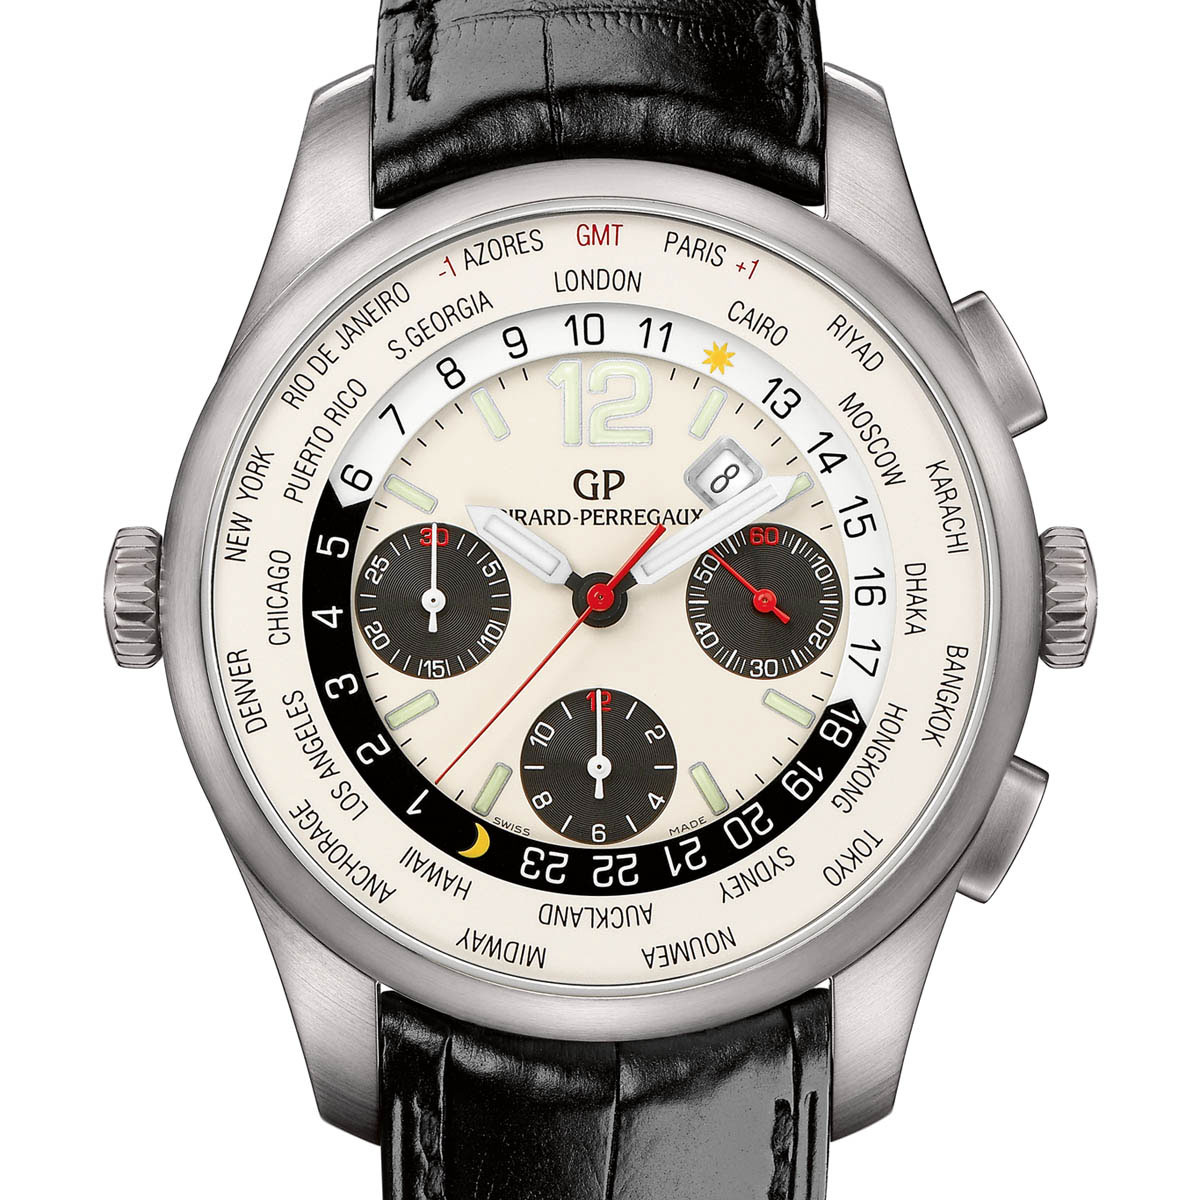 New Girard-Perregaux WW.TC Chronograph &#8211; Complete Transparency on Your Wrist